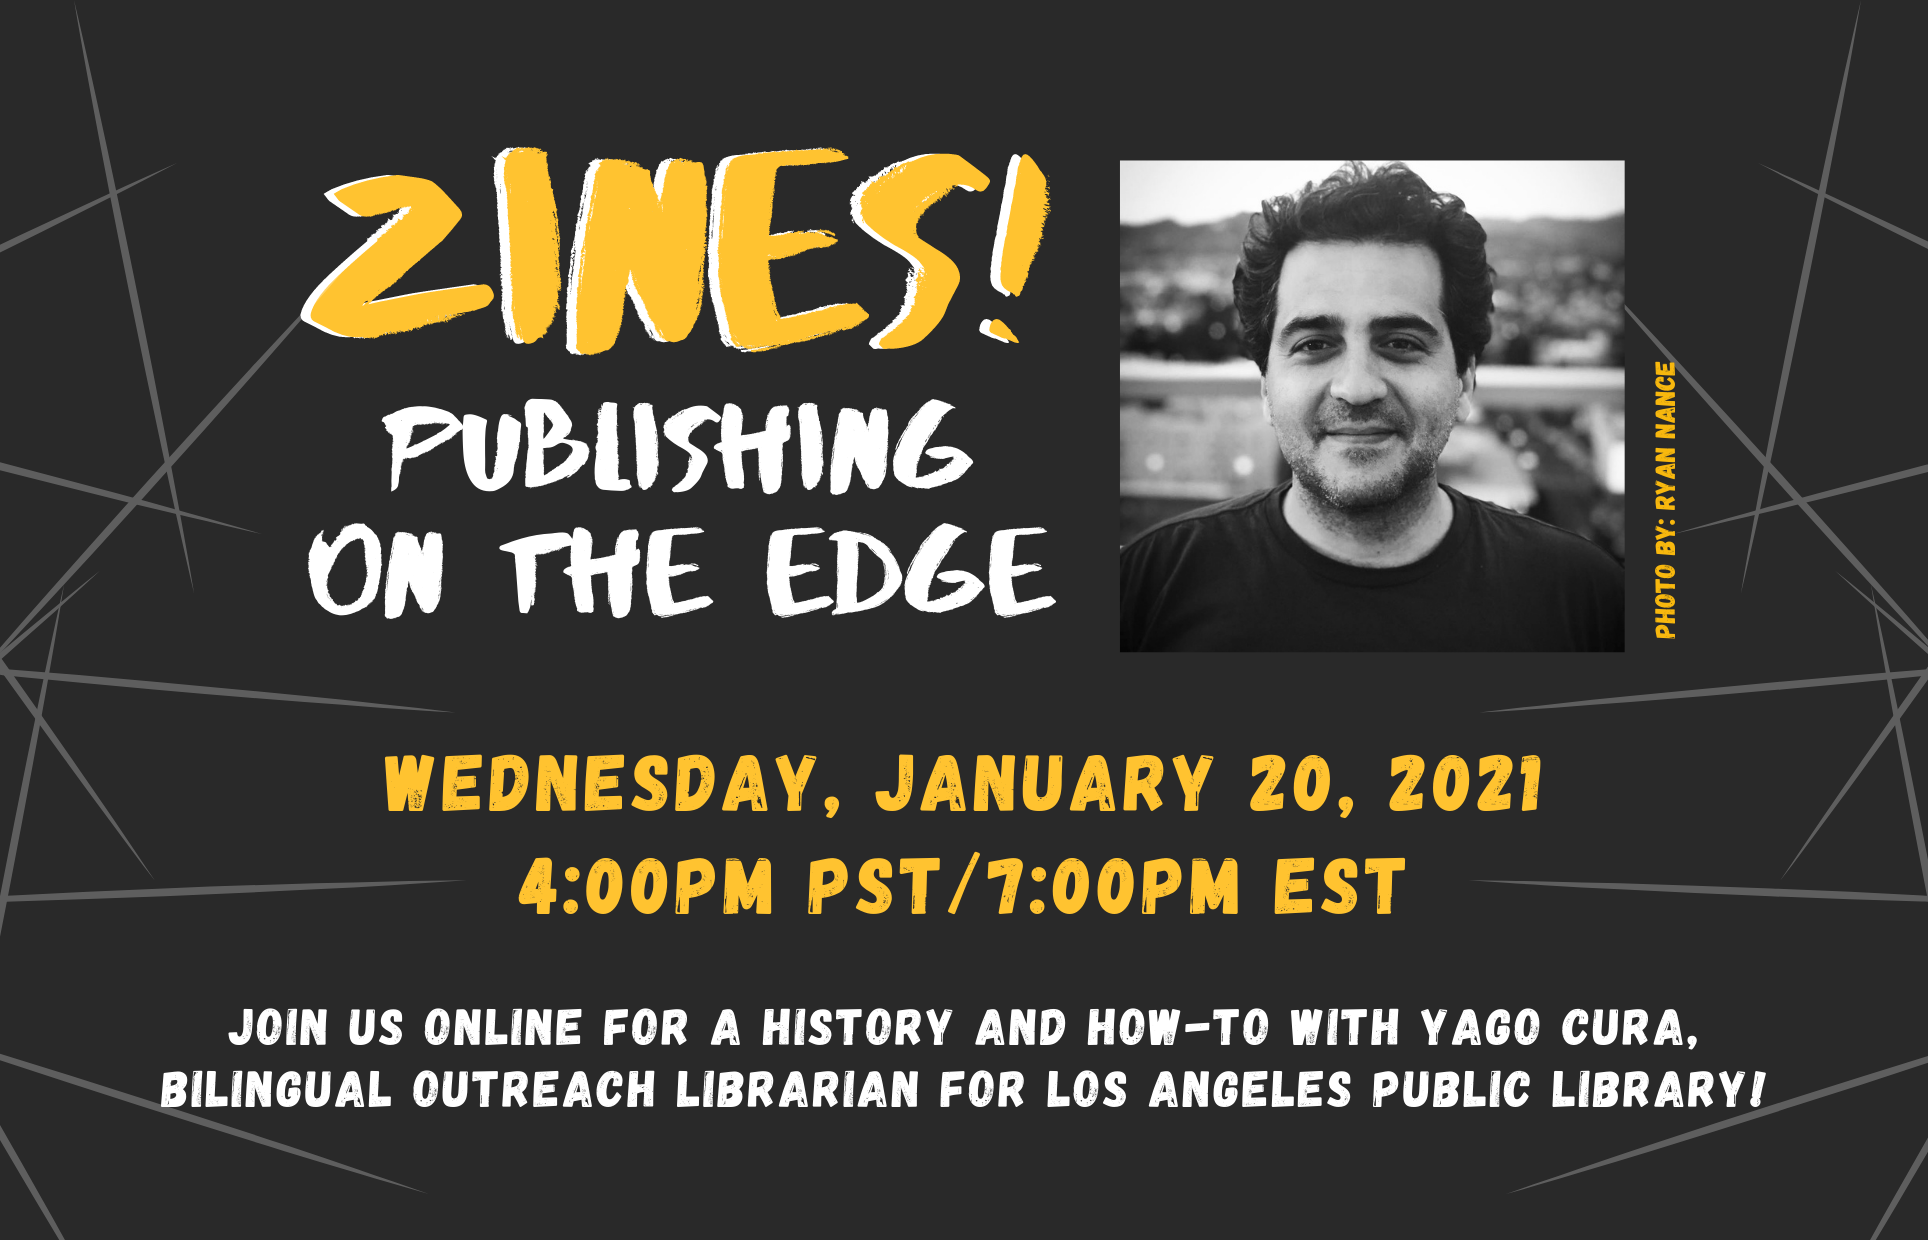 Zines! Publishing on the Edge (Online Event)